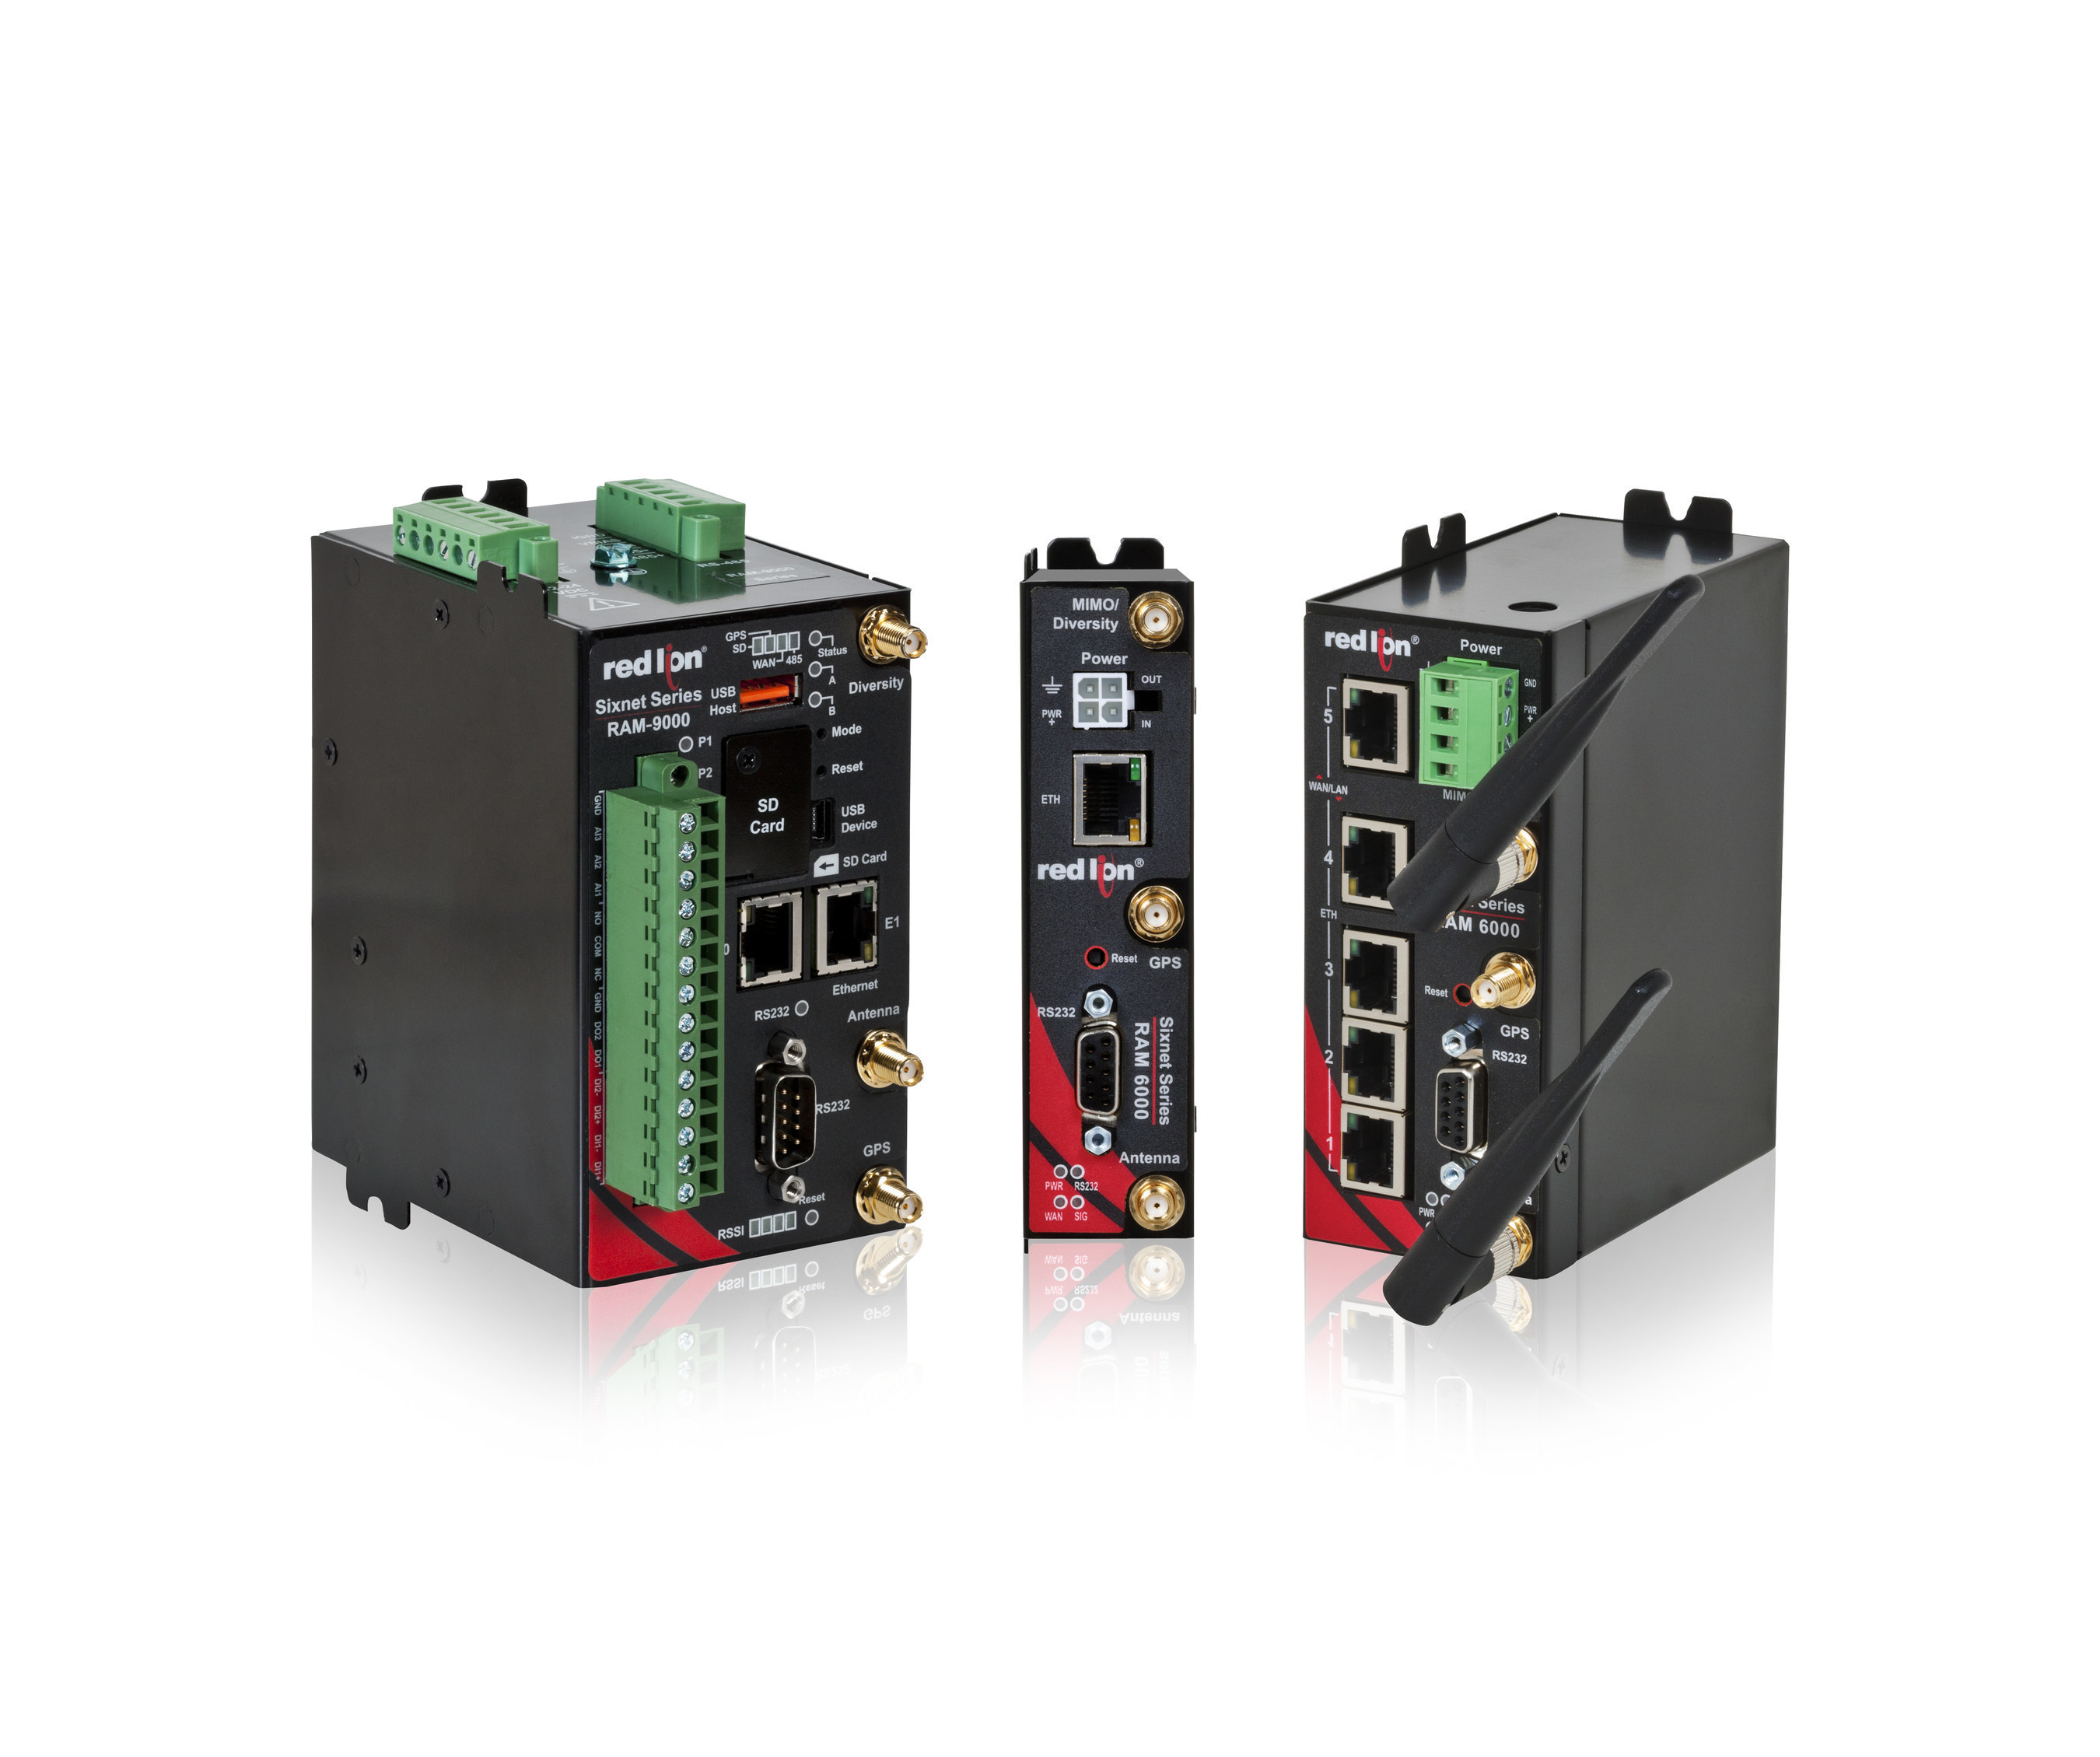 Red Lion Adds Multi-Carrier Capabilities to Sixnet Series Cellular Automation Family